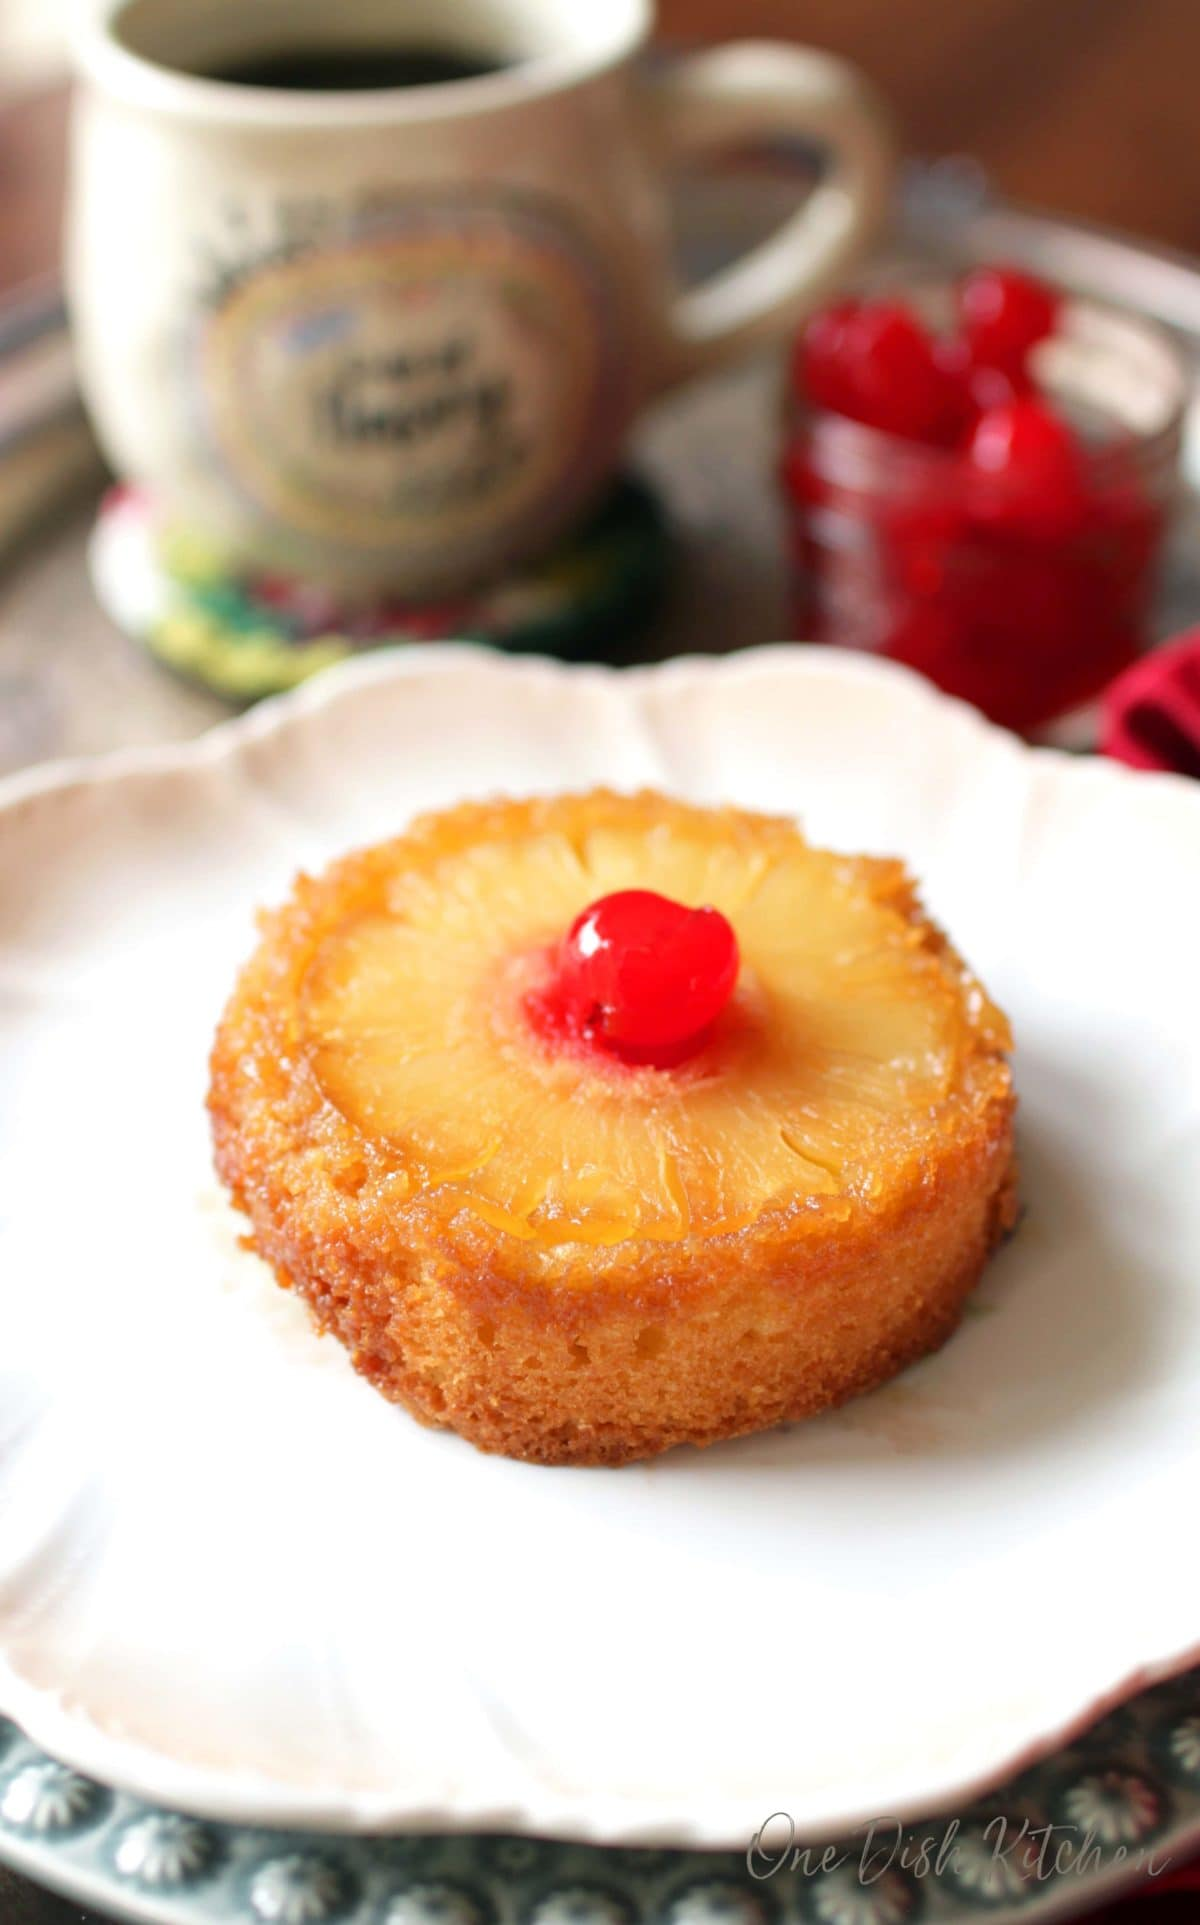 a single pineapple upside down cake on a white plate with a jar of maraschino cherries and a mug of coffee in the background.